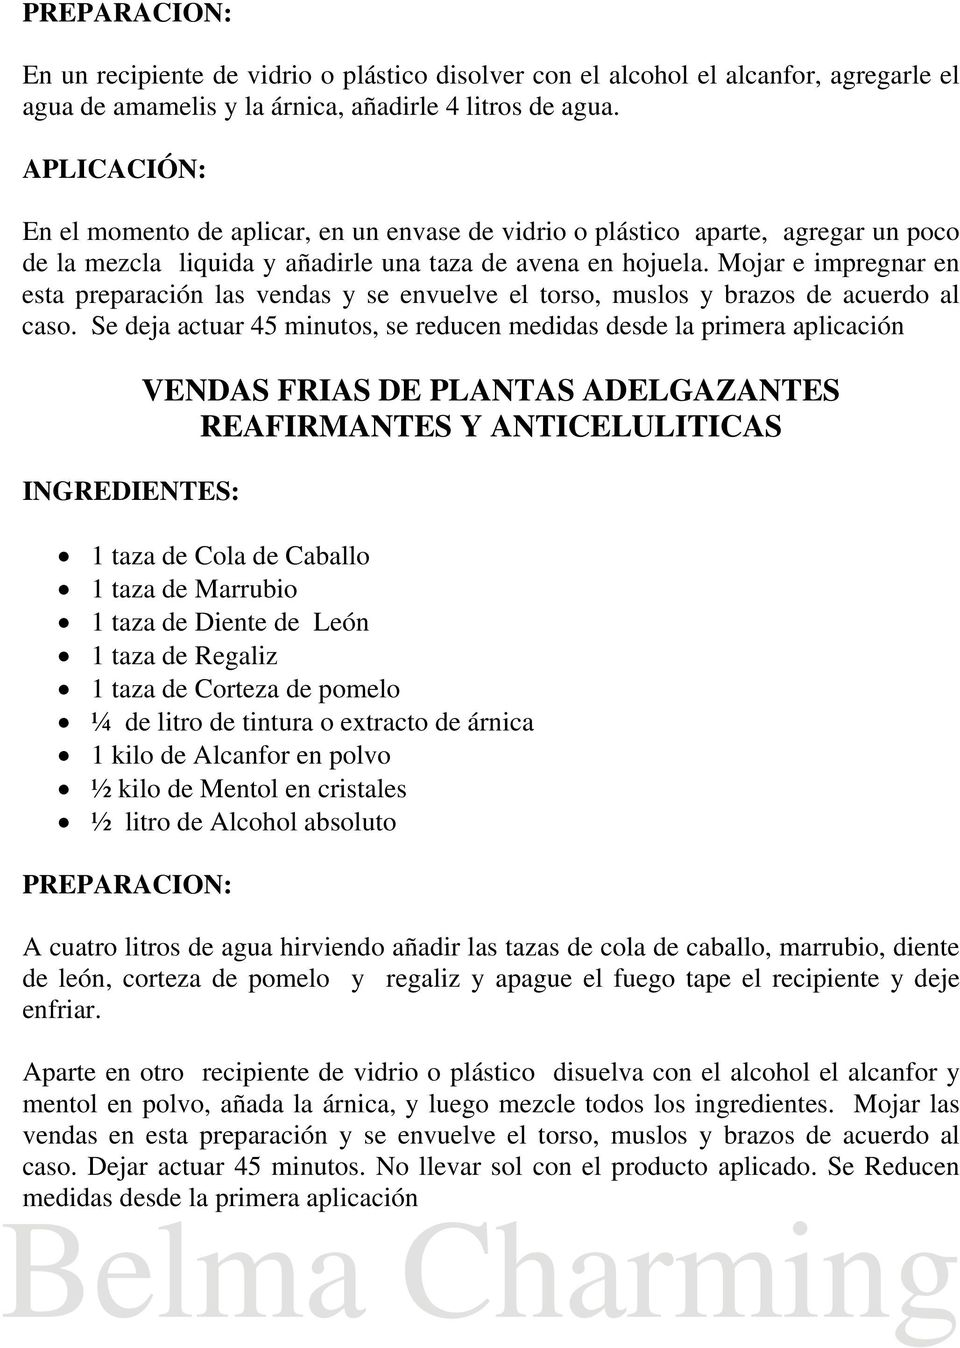 Vendas frias para adelgazar ingredientes